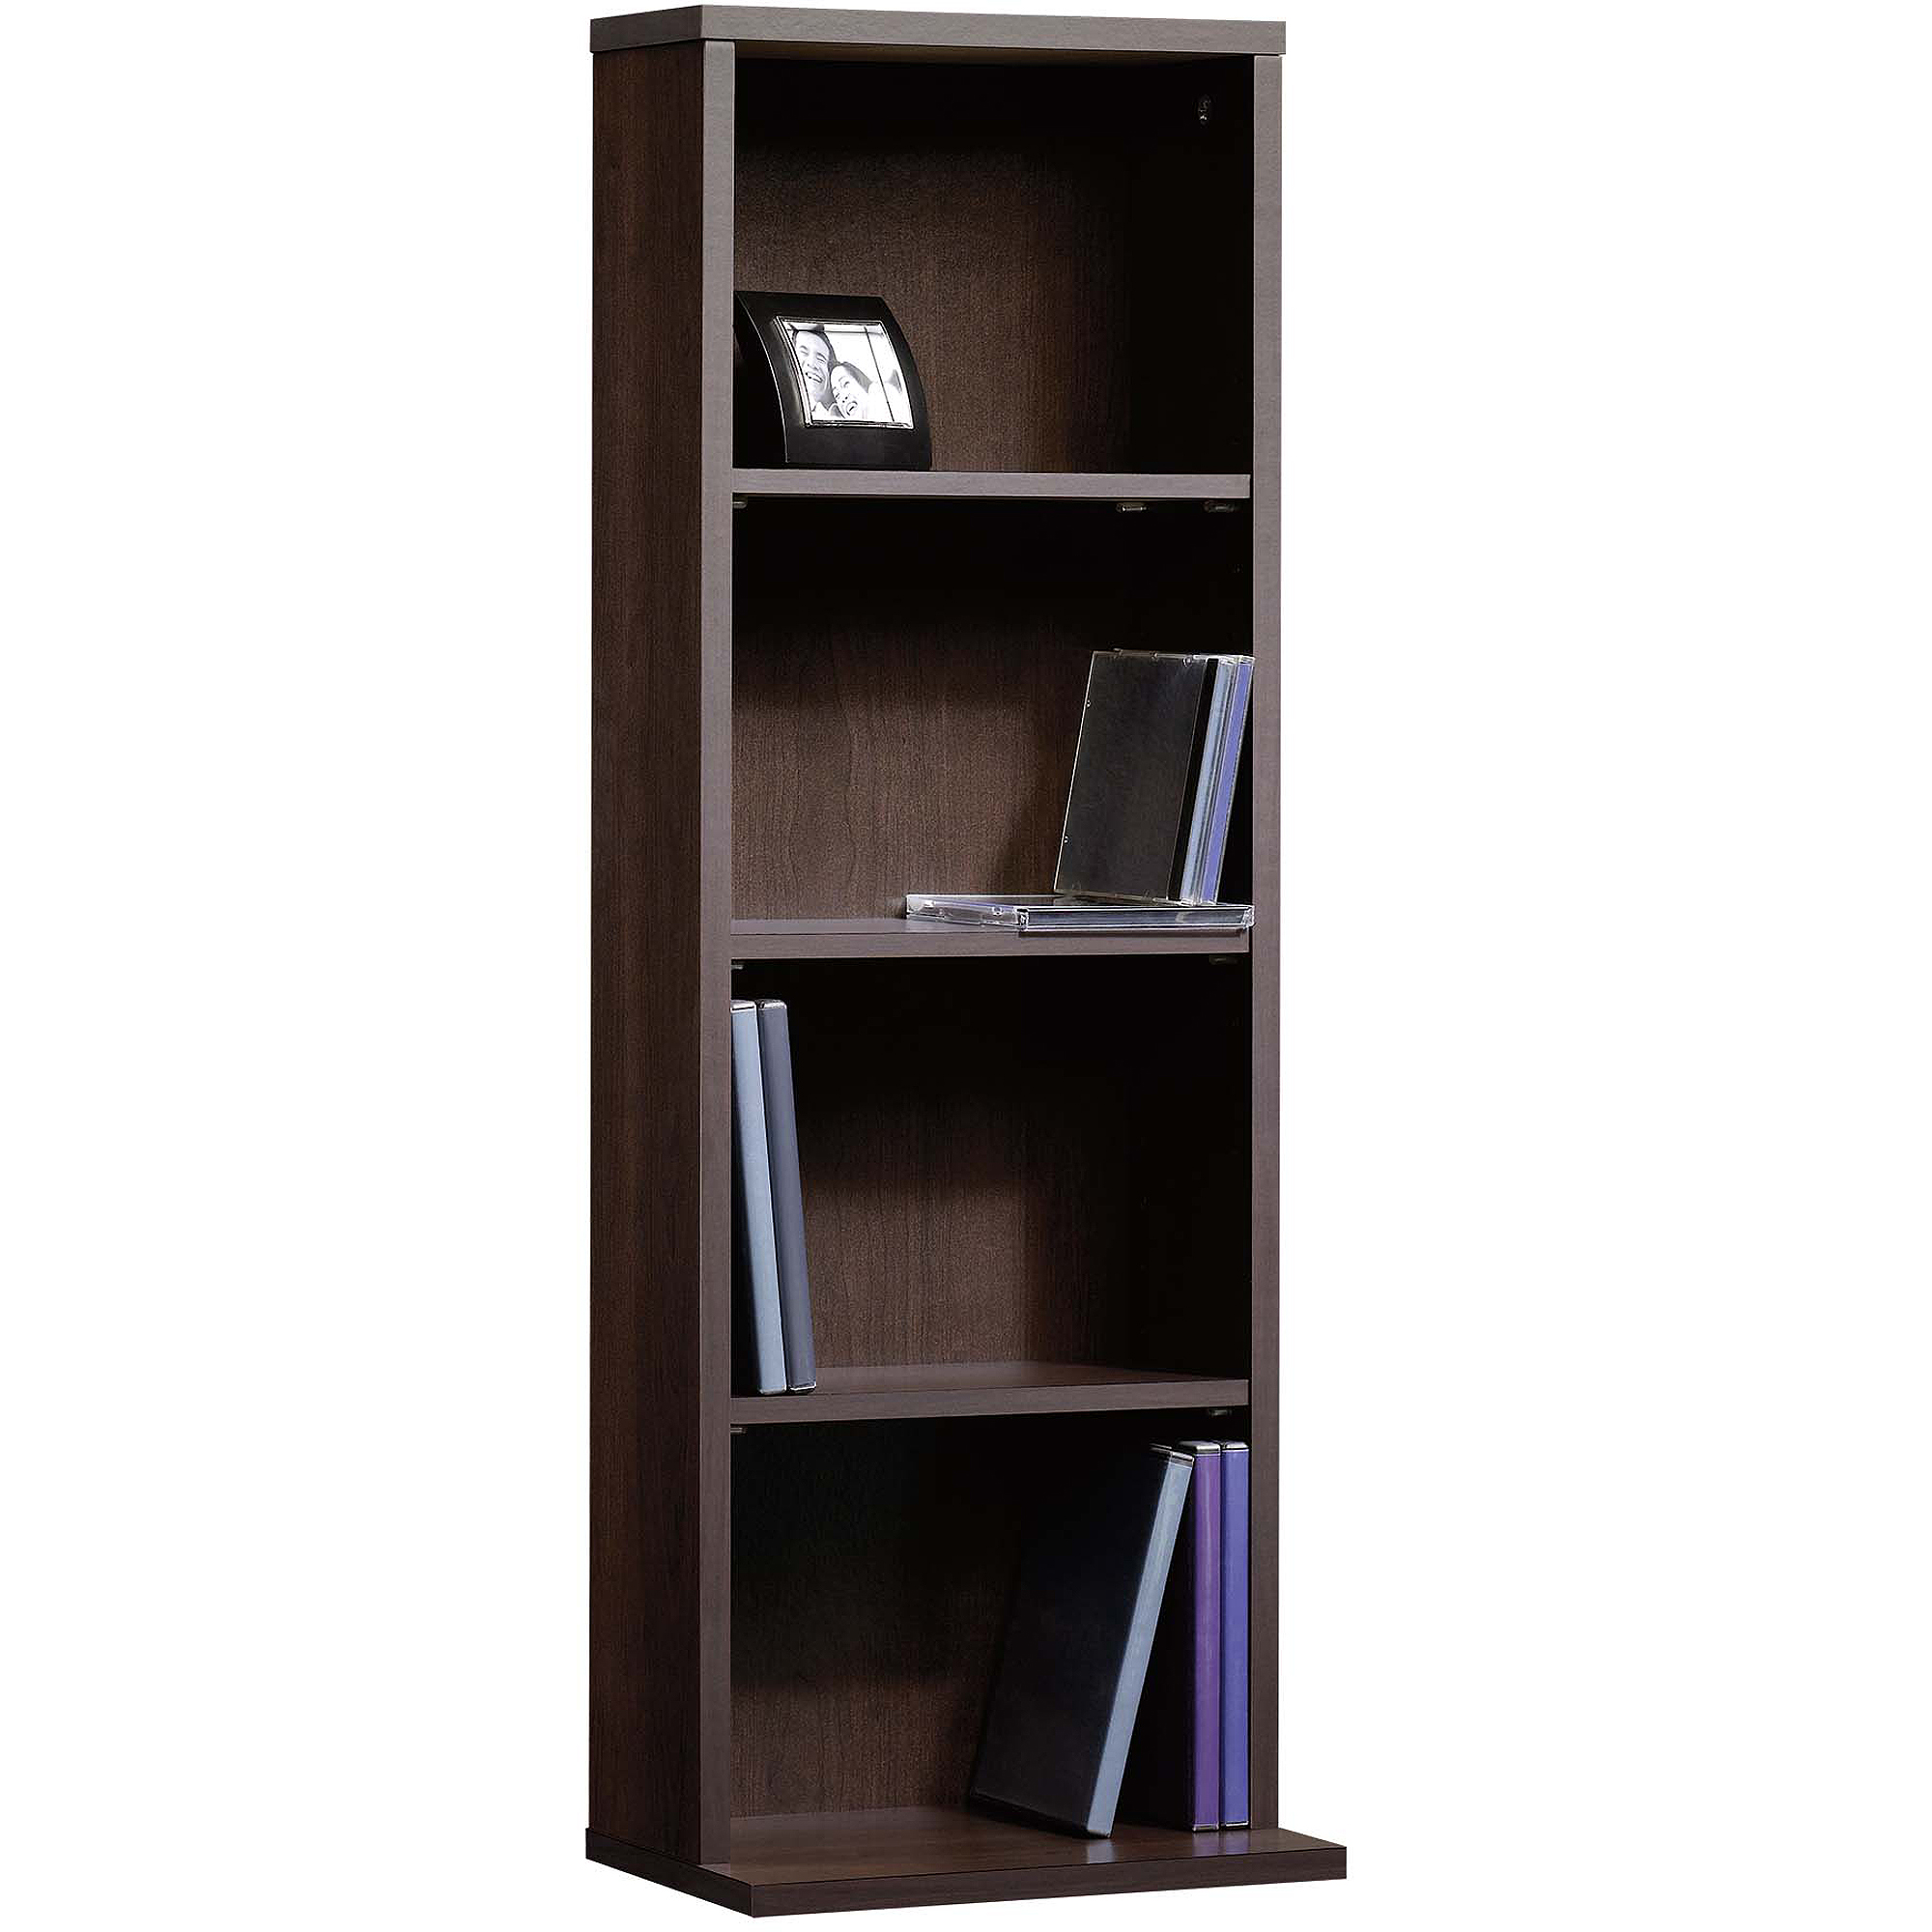 Sauder Beginnings Multimedia Storage Tower, Cinnamon Cherry   Walmart.com